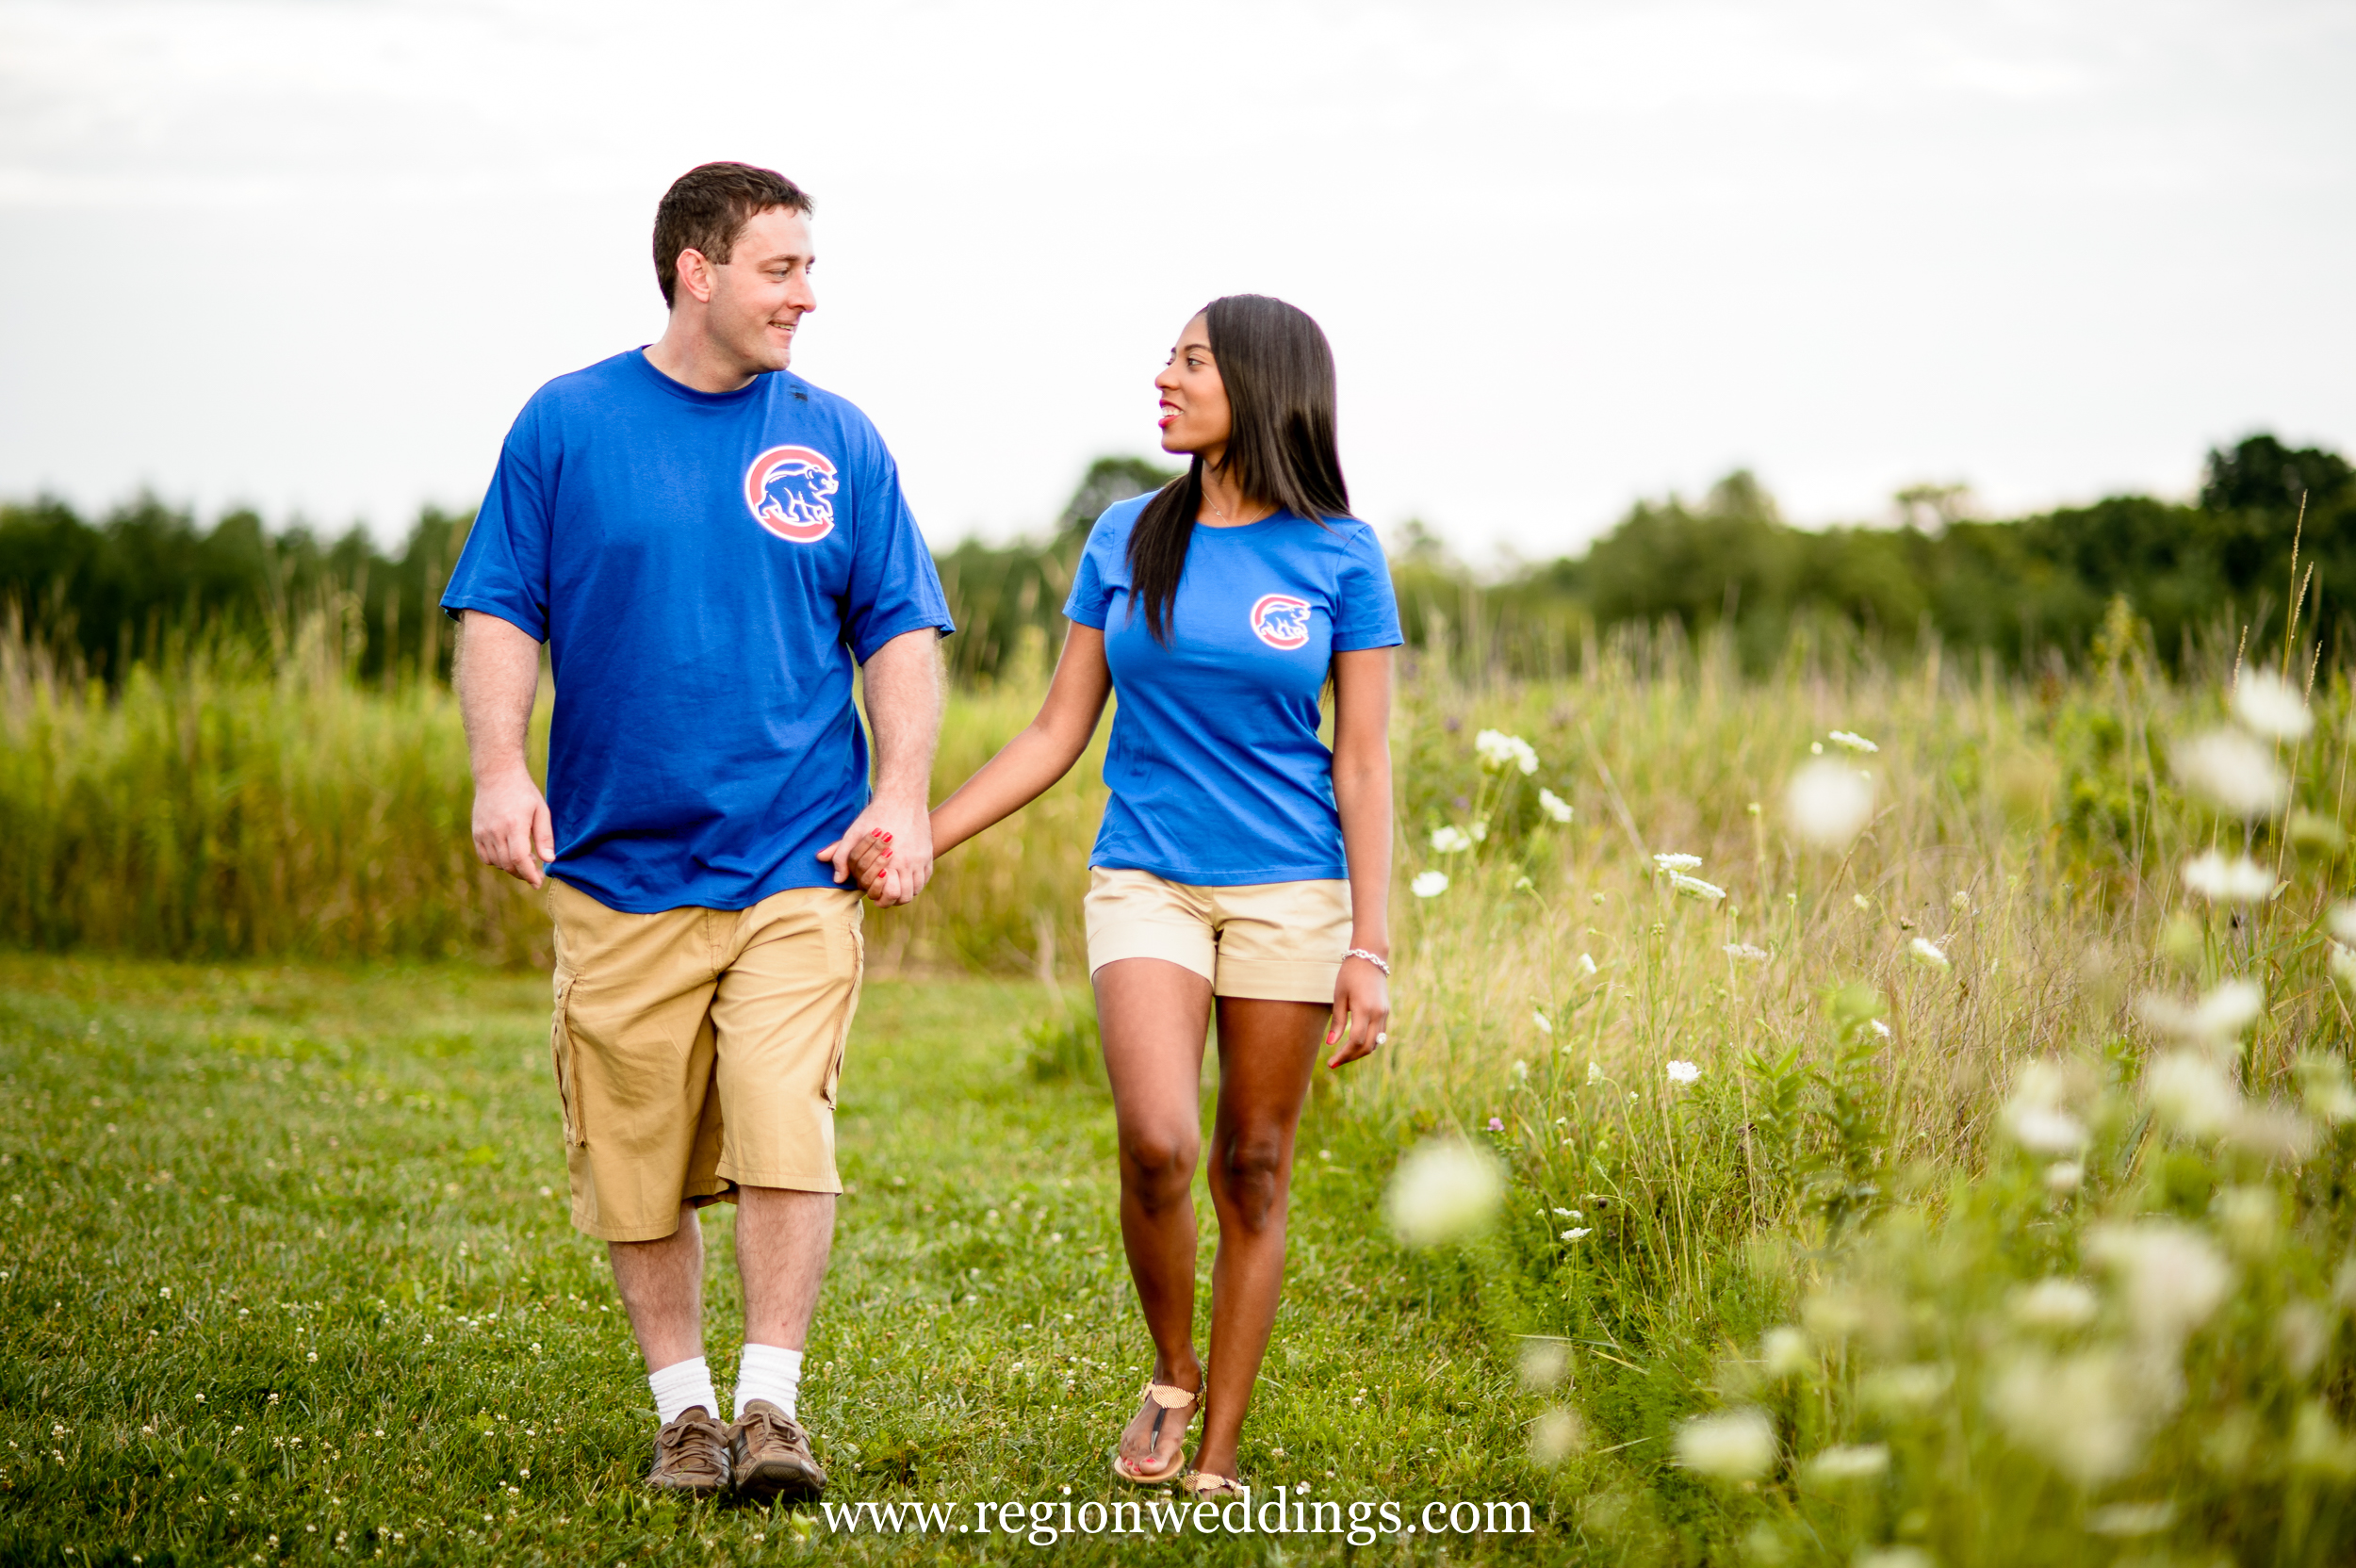 Two Chicago Cubs fans take a stroll at Taltree Arboretum.